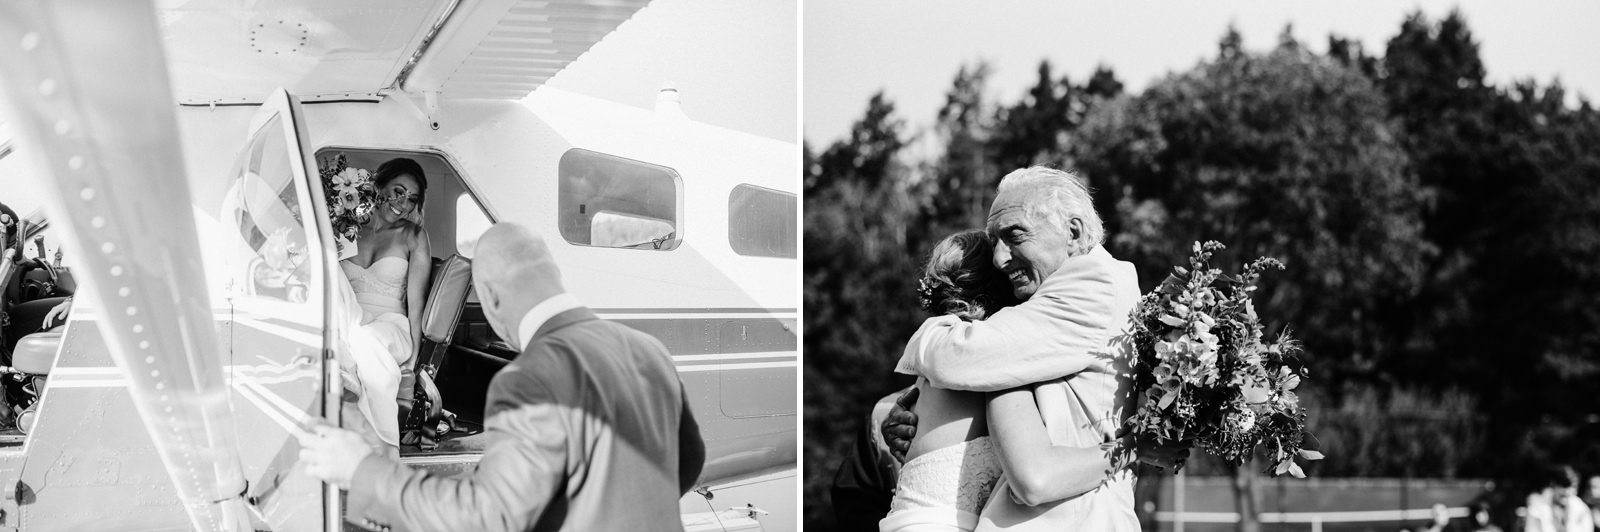 221-roche-harbor-wedding-with-bride-and-seaplane-in-the-san-juan-islands.jpg